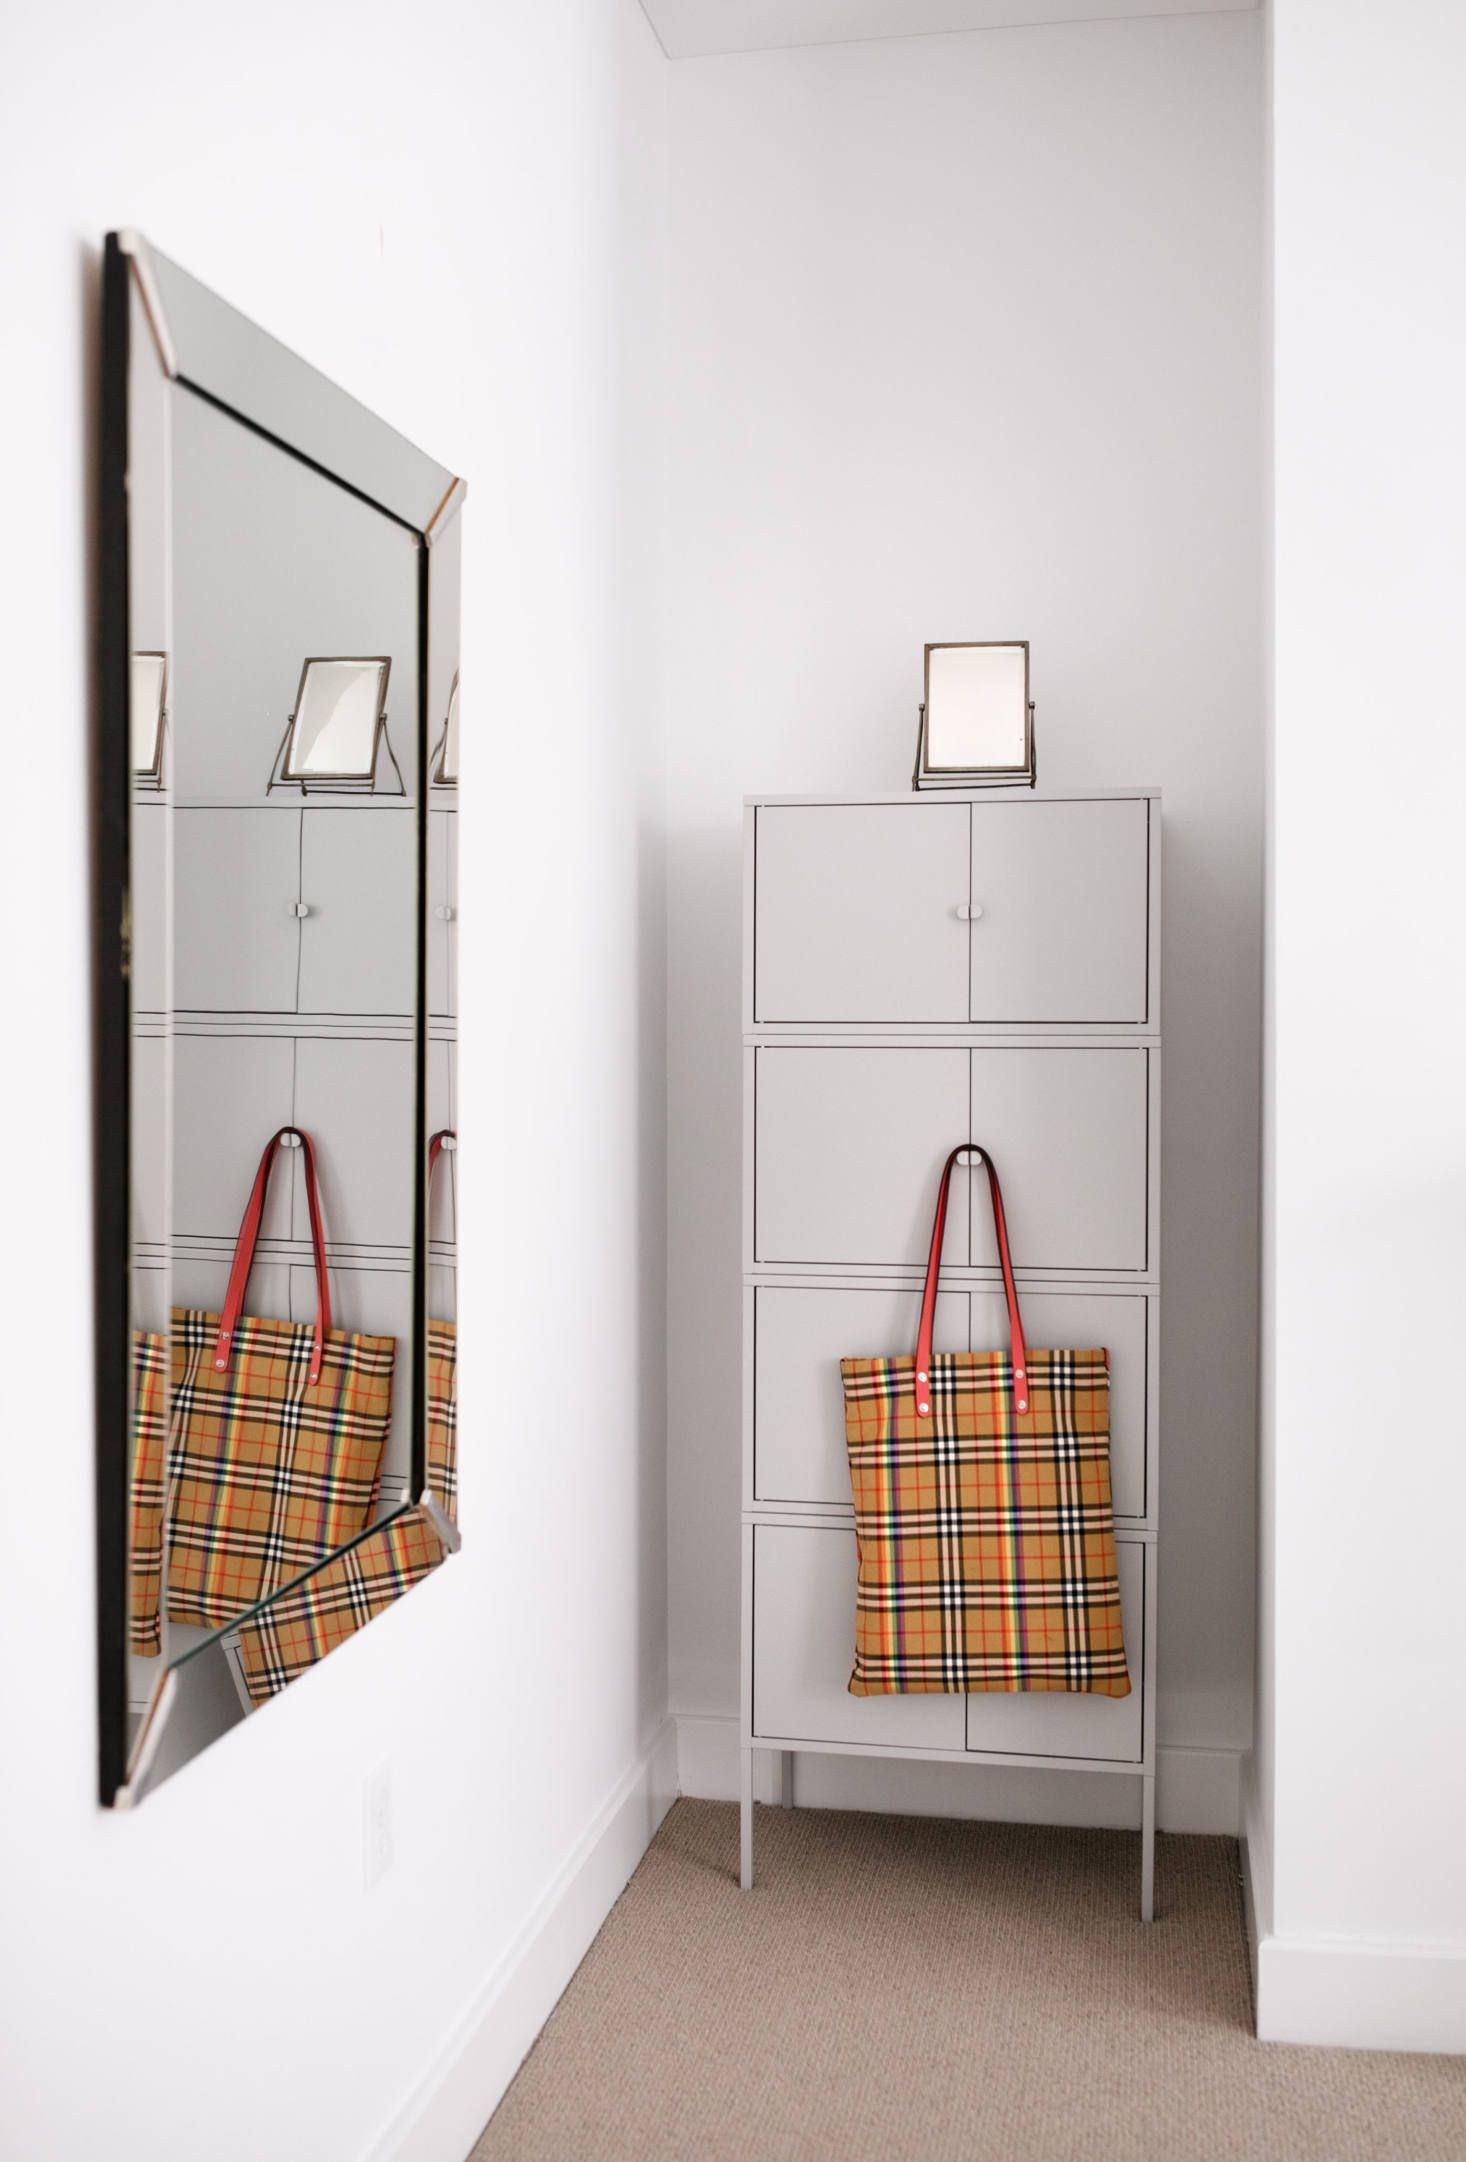 Own It Like You Own It 8 Ways To Personalize Your Rental Designer Edition Remodelista In 2020 Ikea Storage Furniture Ikea Storage Ikea Hack Storage